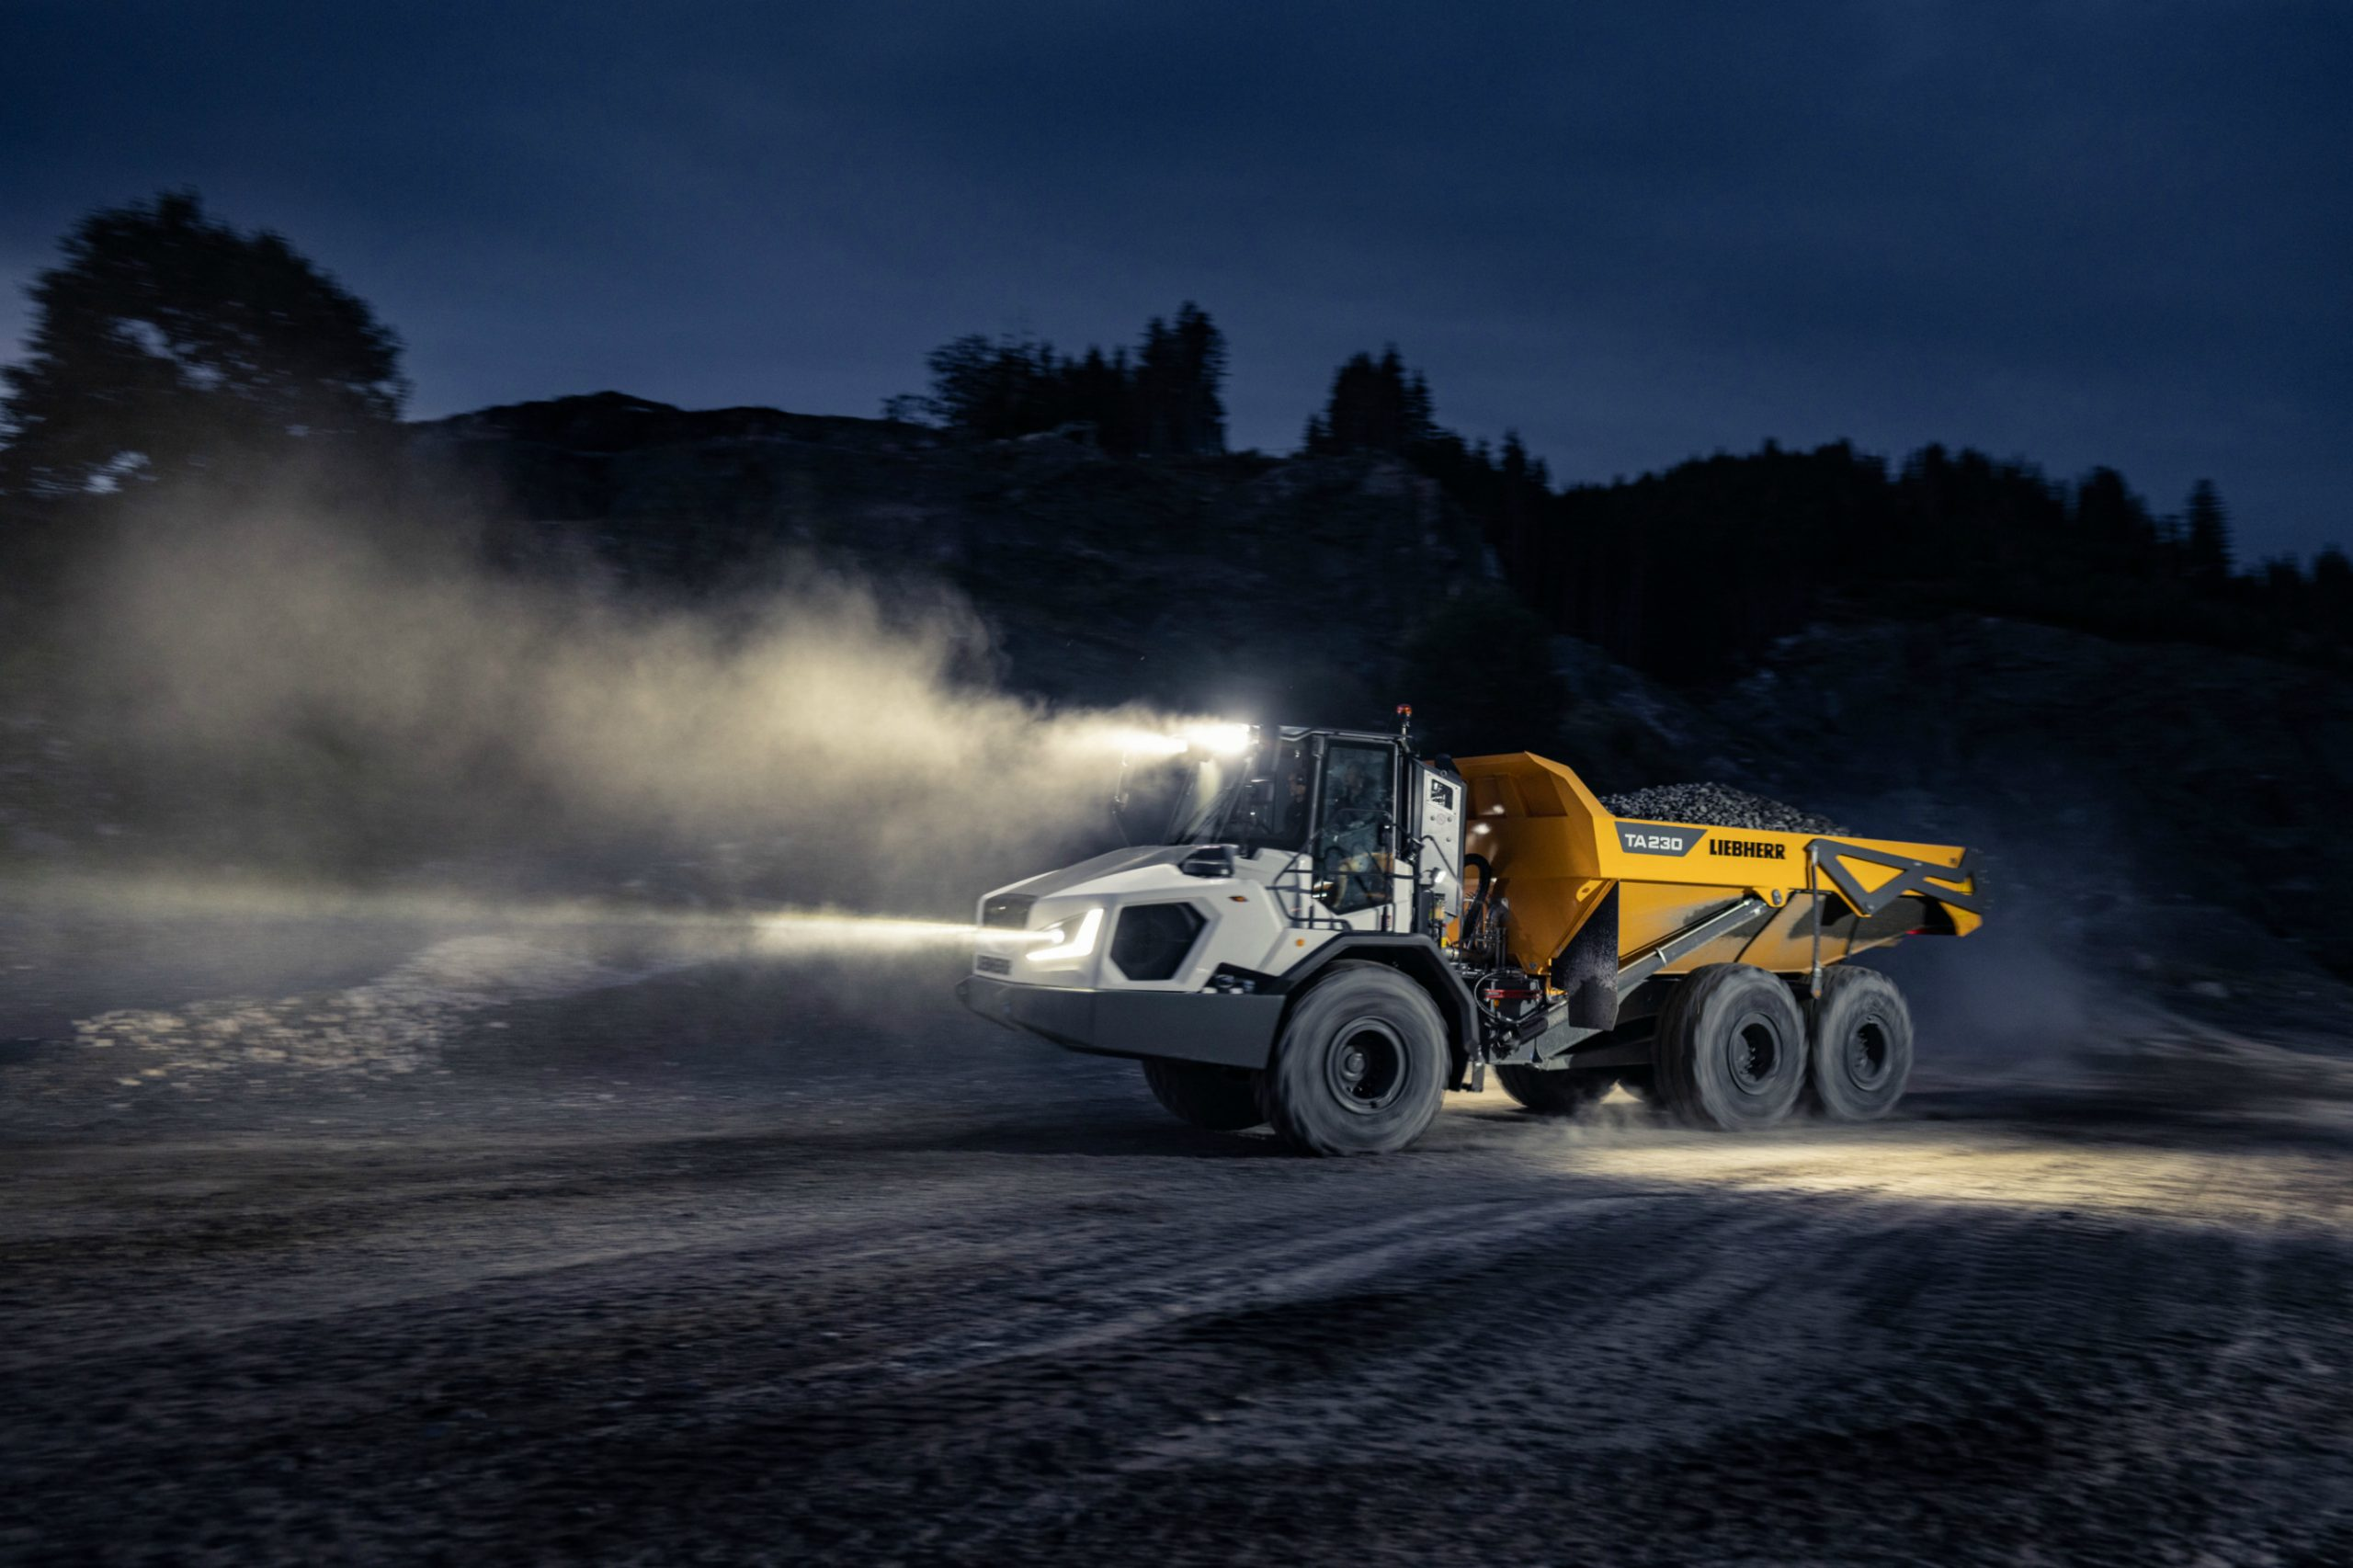 World première: Liebherr presents the new generation of articulated dump trucks